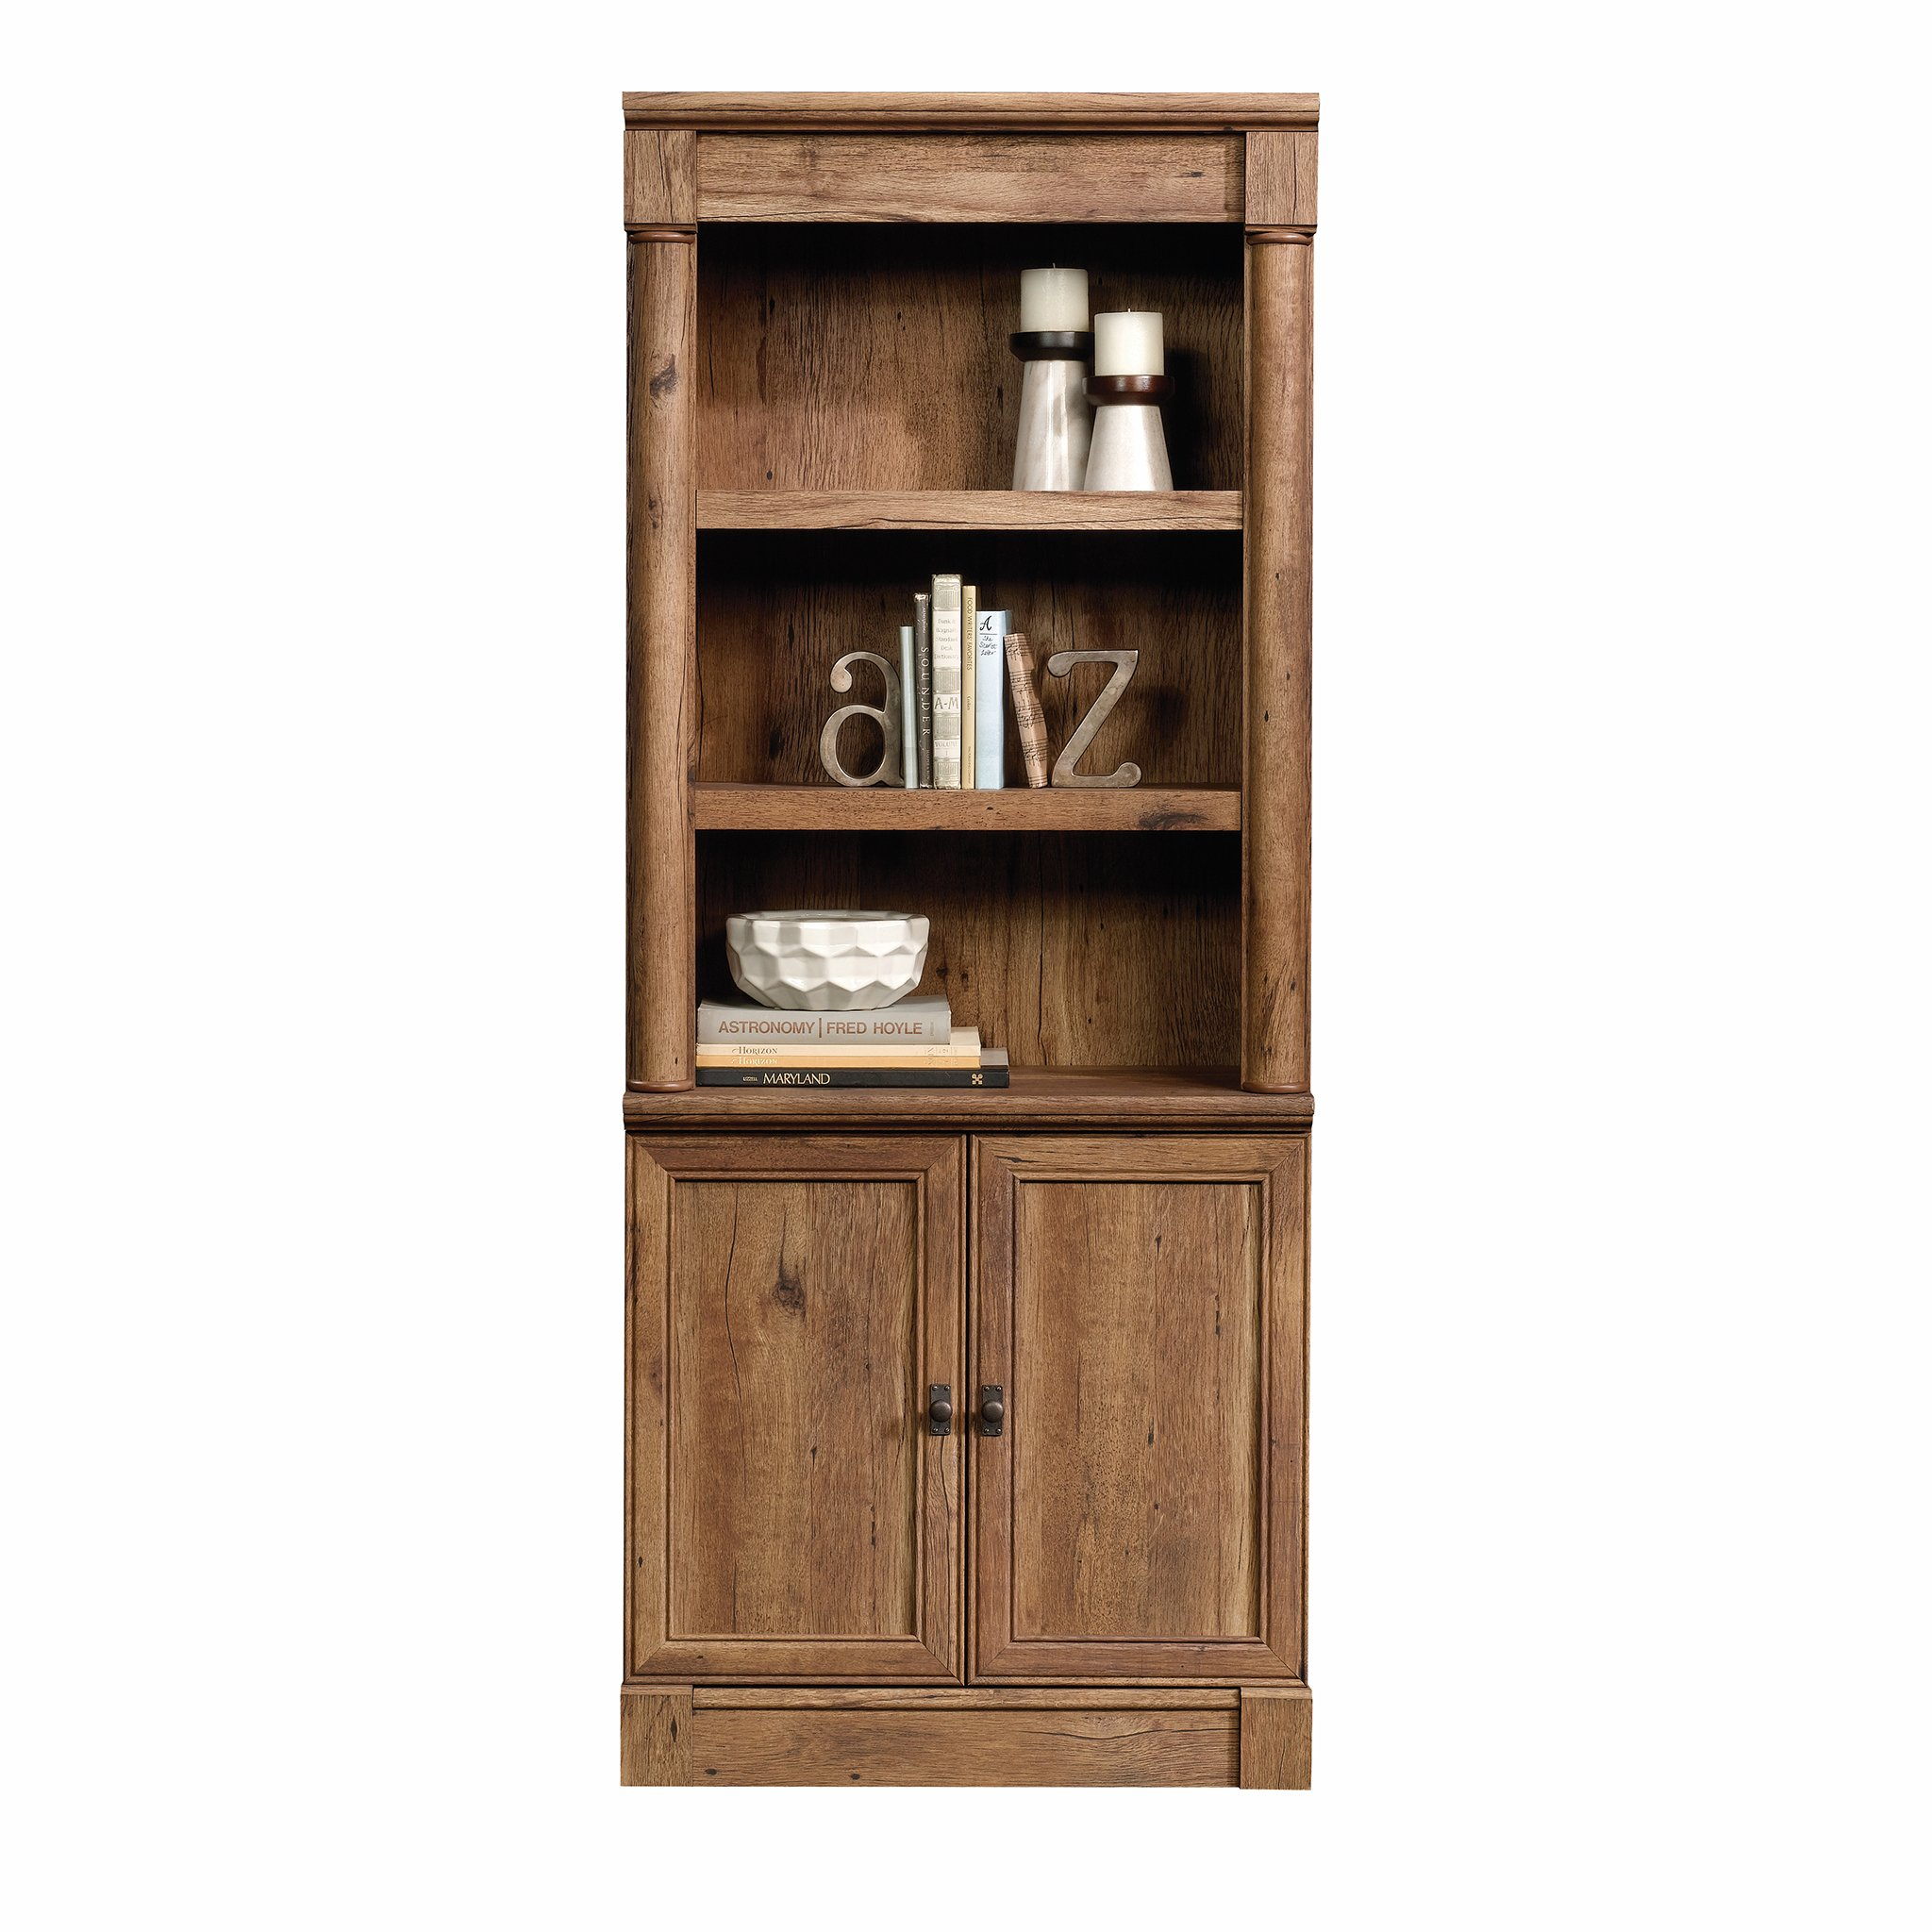 Sauder 420609 Palladia Library with Doors, L: 29.37'' x W: 13.90'' x H: 71.85'', Vintage Oak finish by Sauder (Image #10)